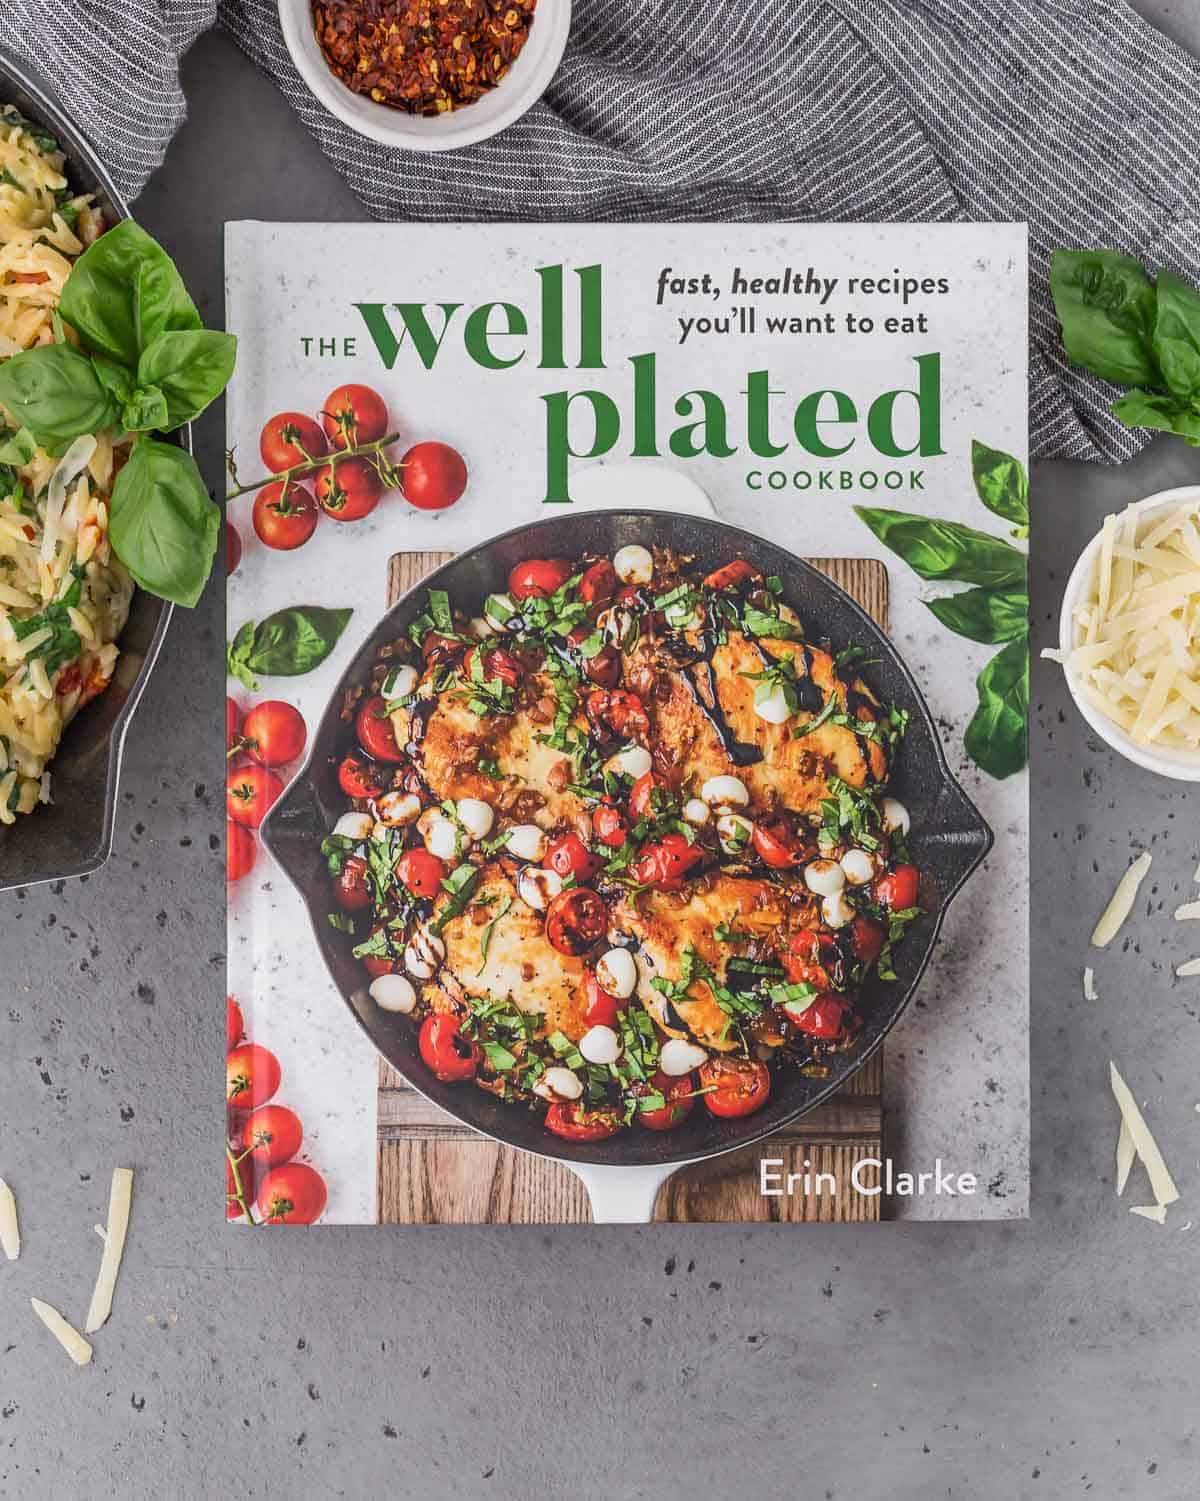 The Well Plated Cookbook on a gray surface. Also pictured are a pasta dish, a small bowl of shredded parmesan cheese, a small bowl of red pepper flakes, and fresh basil.